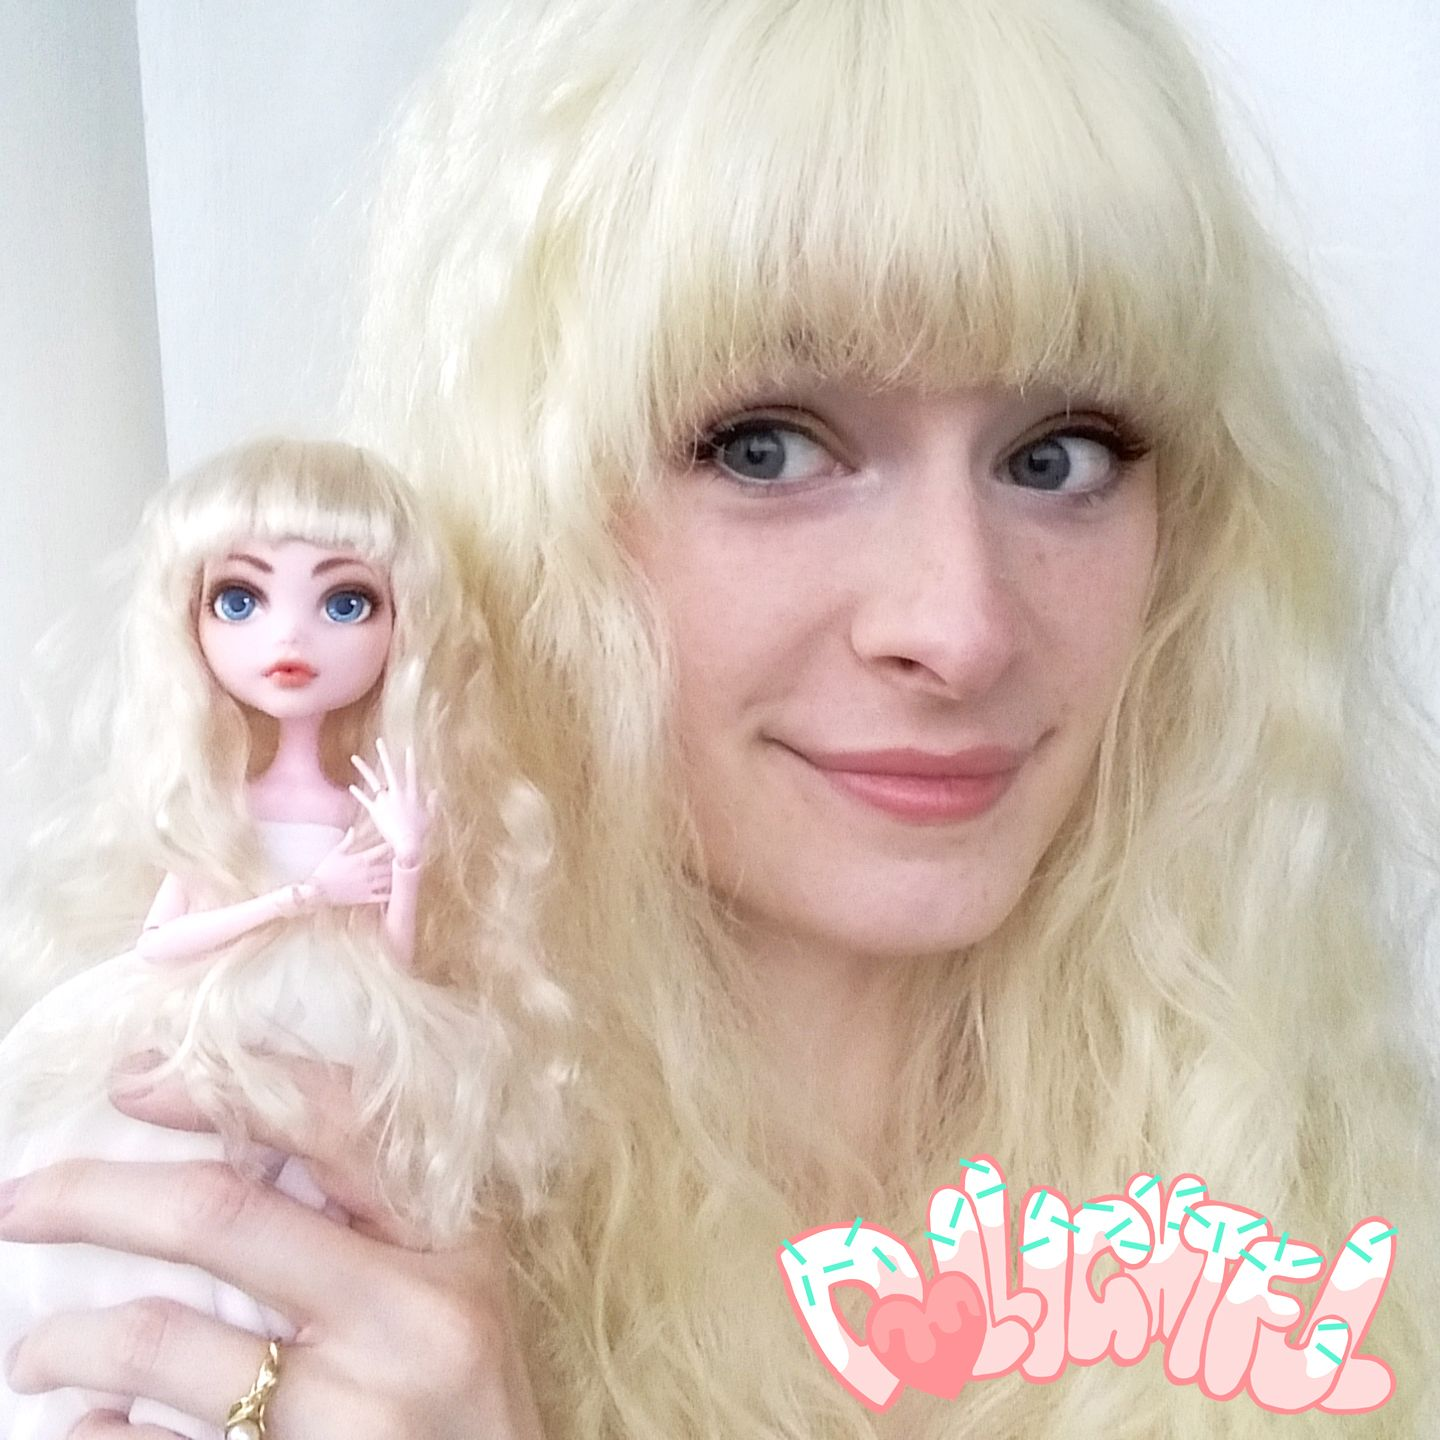 Annyeong! It's Dollightful! D facereveal Doll painting